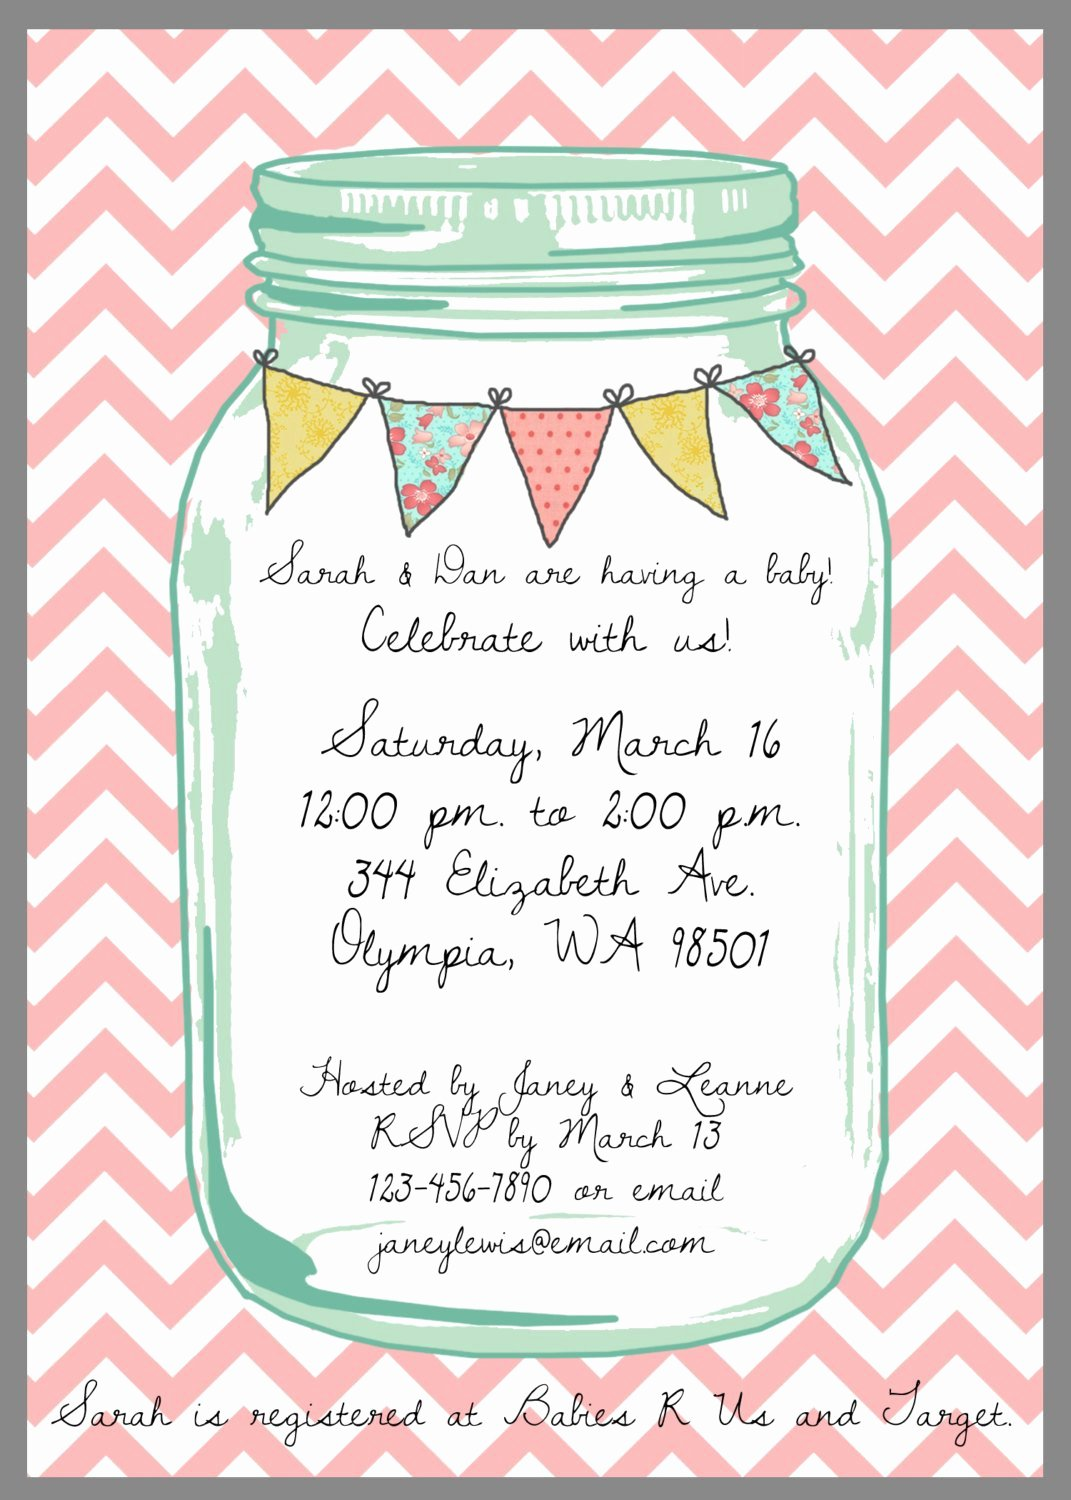 Mason Jar Invitation Template Best Of Mason Jar Baby Shower Invitation